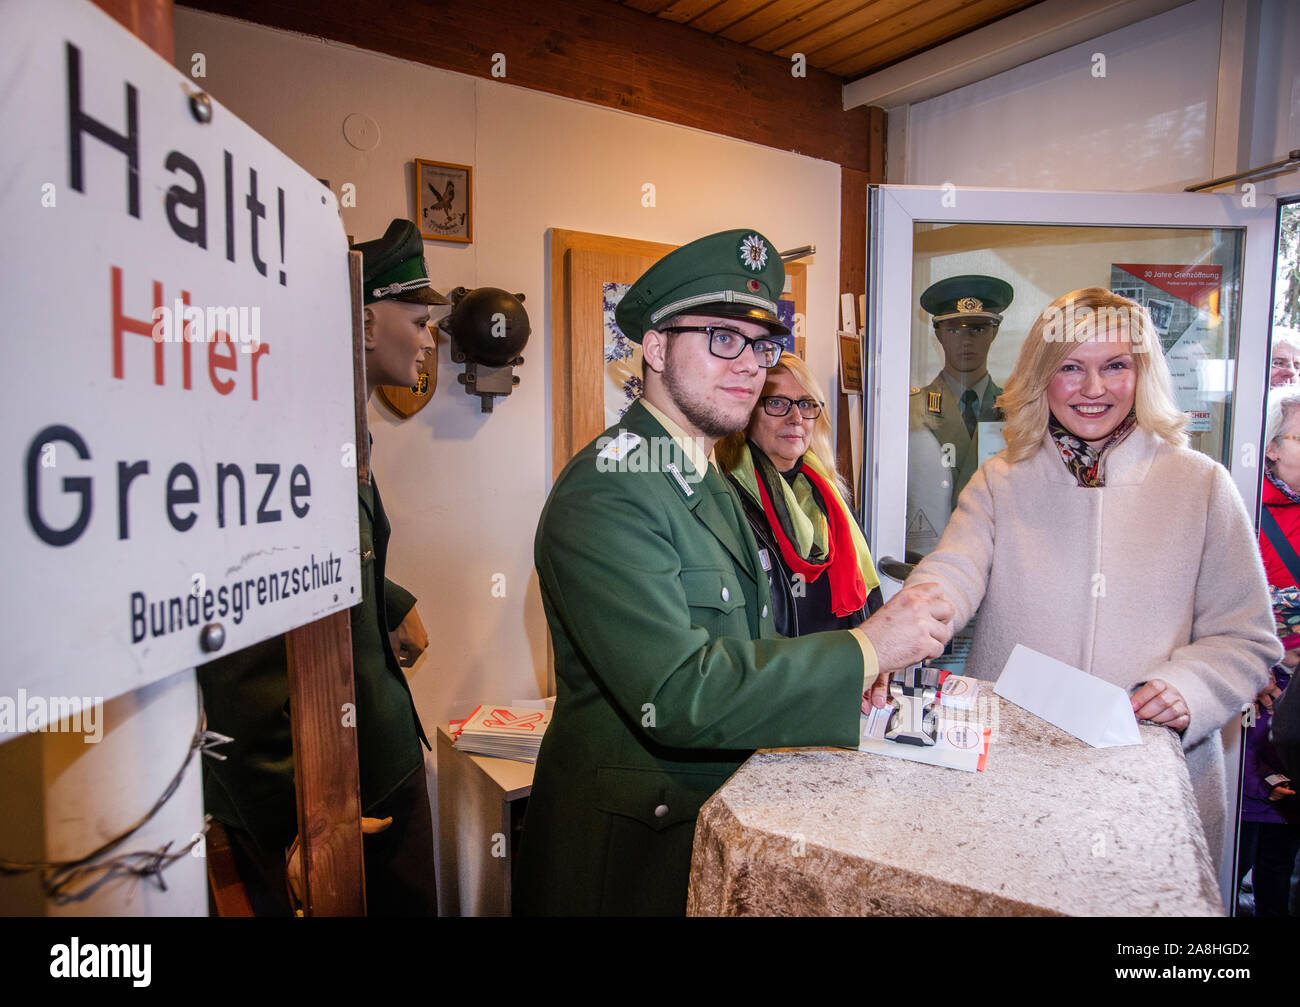 09 November 2019, Schleswig-Holstein, Lübeck-Schlutup: Manuela Schwesig (SPD), the Prime Minister of Mecklenburg-Western Pomerania, receives an exit stamp from a Federal Border Guard to the GDR at the Border Museum near the former Schlutup border crossing during a celebration commemorating the fall of the Berlin Wall 30 years ago. Schlutup was at the time the northernmost border crossing via which GDR citizens flocked to the West after the surprising opening of the border. Photo: Jens Büttner/dpa-Zentralbild/dpa Stock Photo